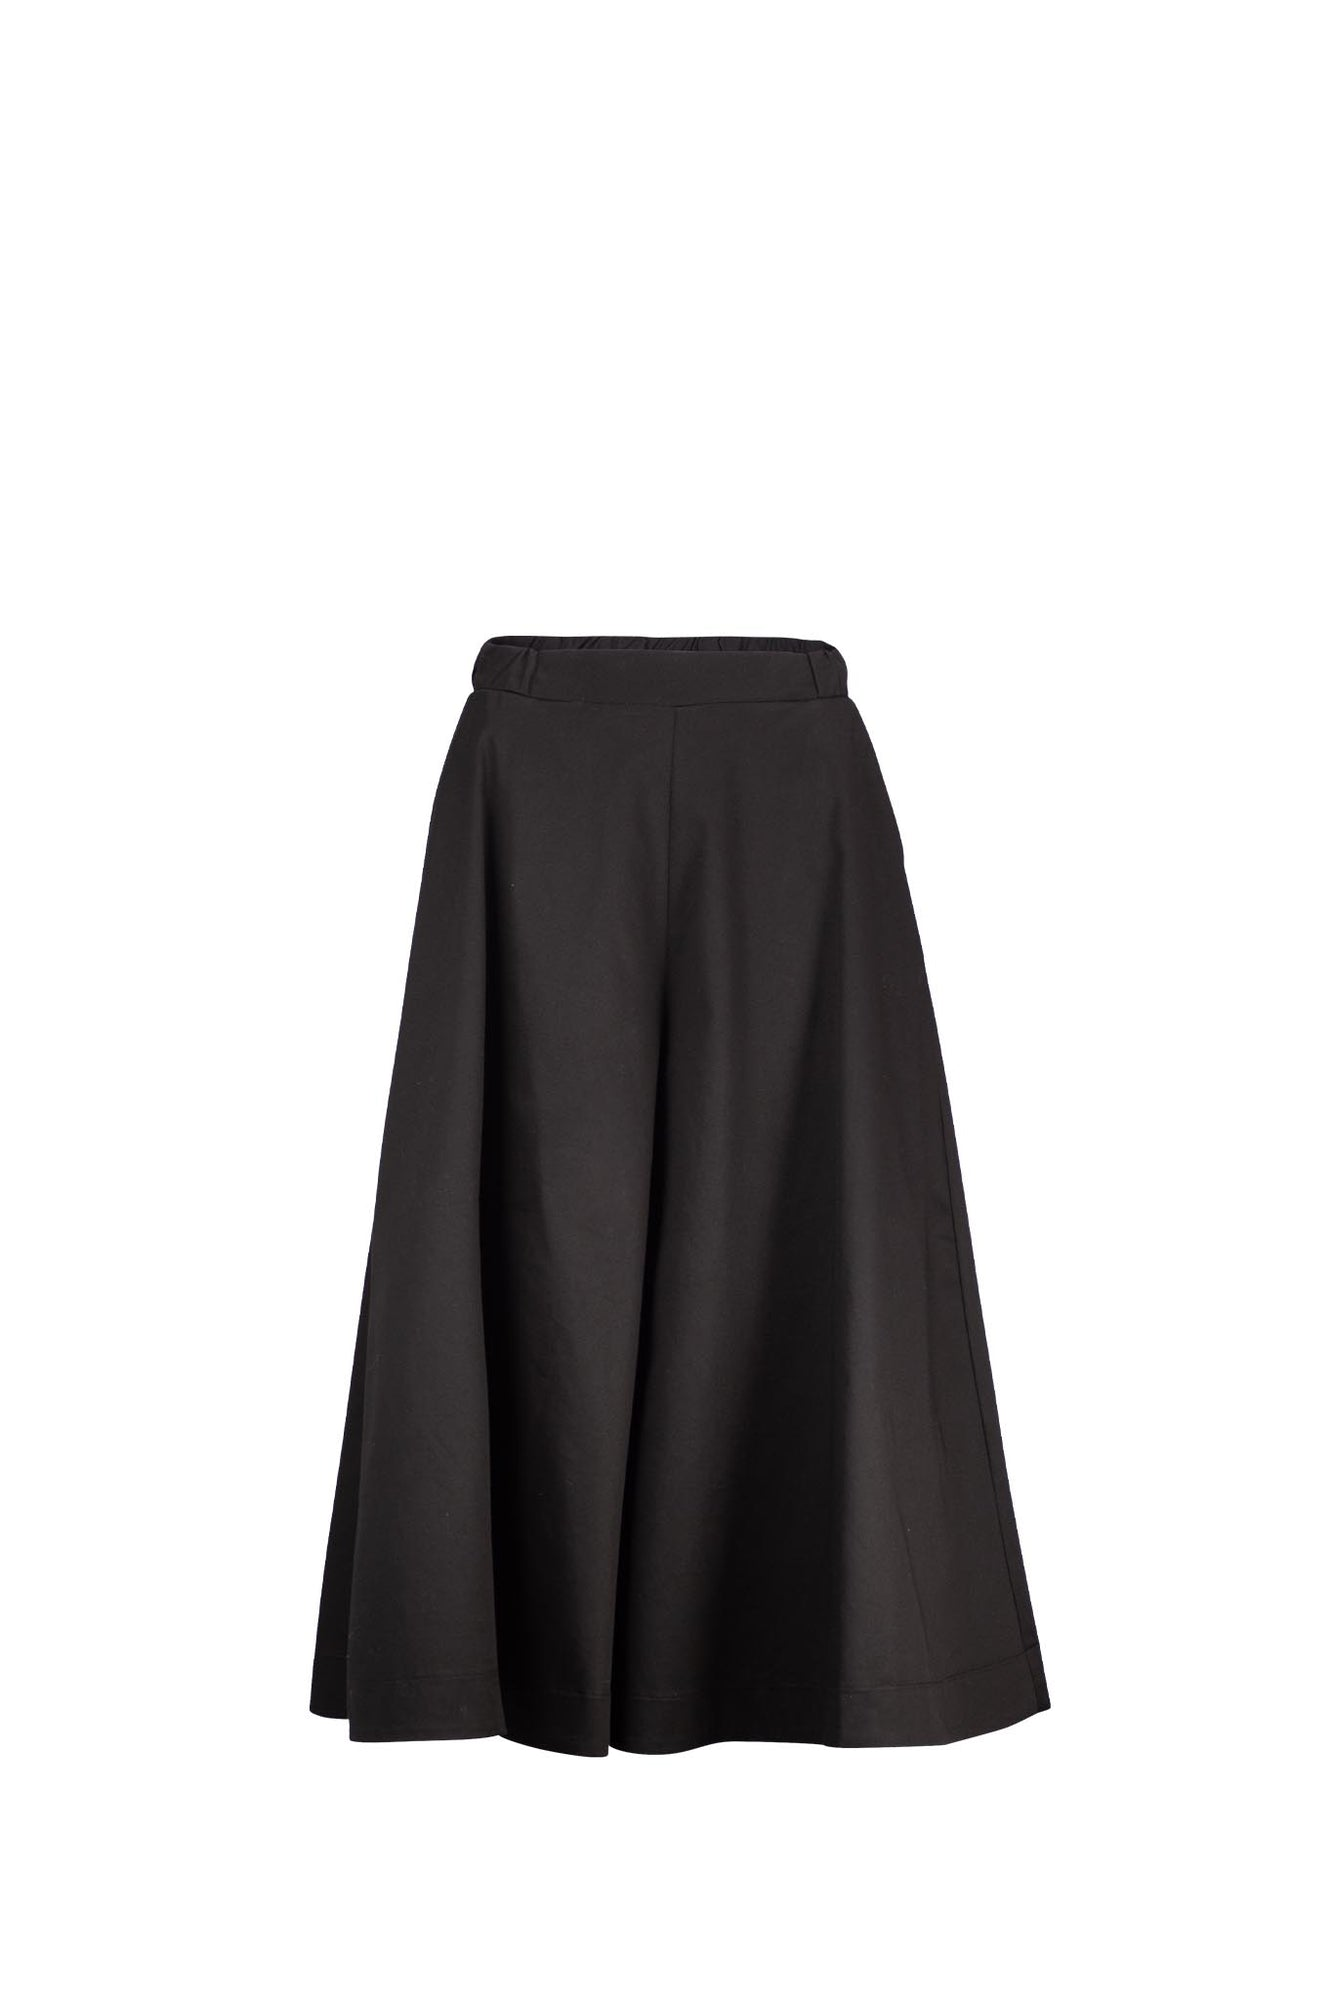 FELIX Black cotton spandex twill